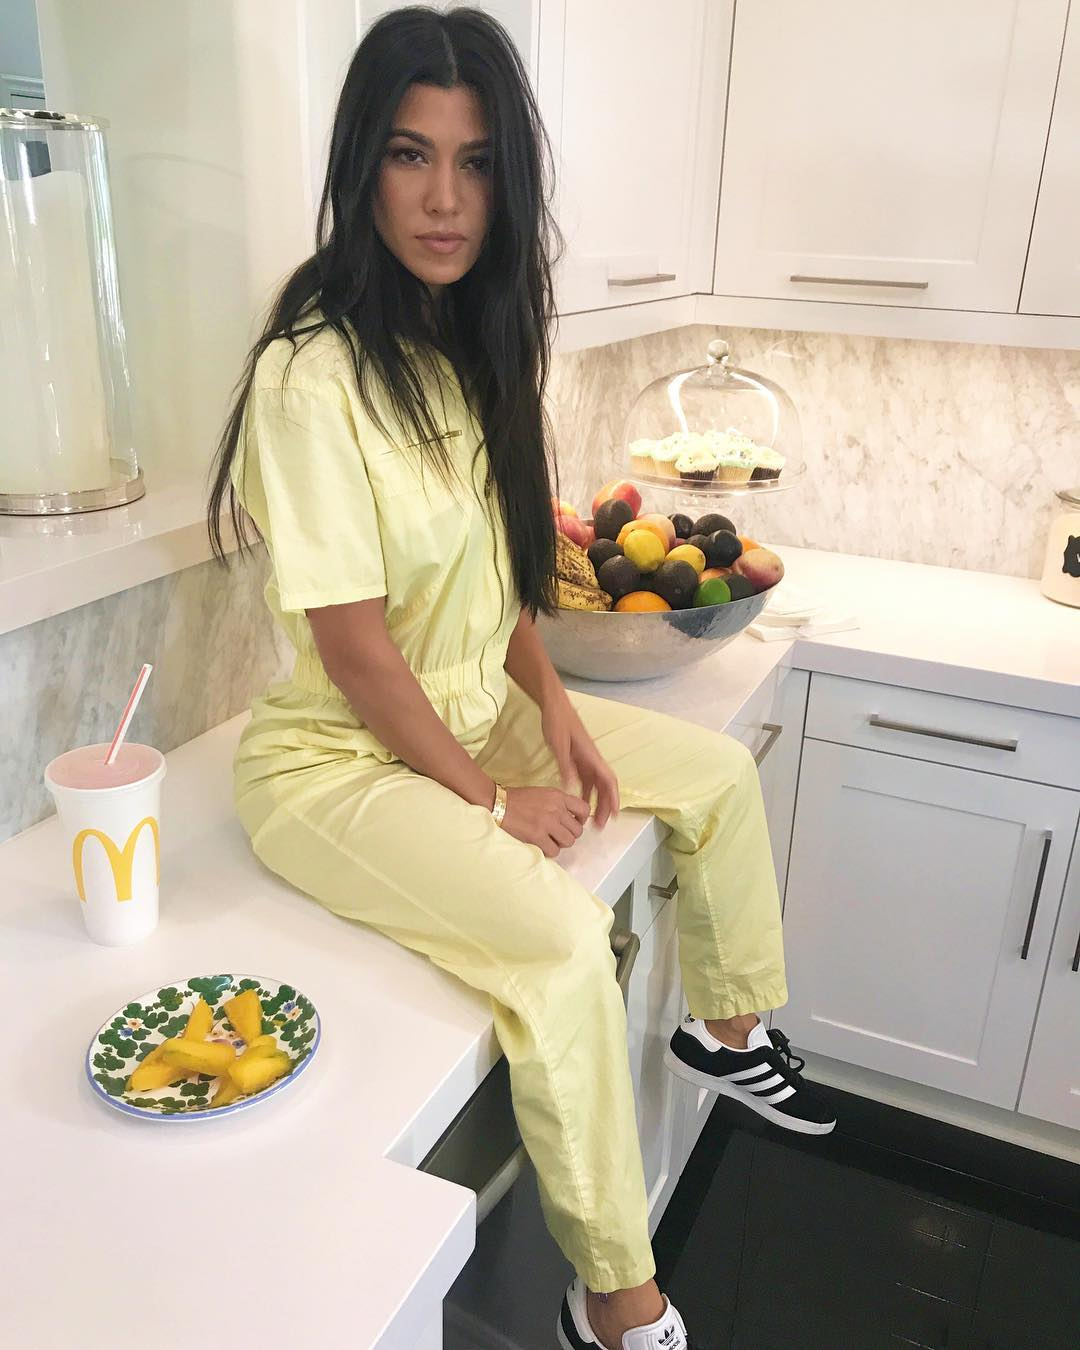 Kourtney kardashian est gr vida do 4 filho afirma site for What does kourtney kardashian do